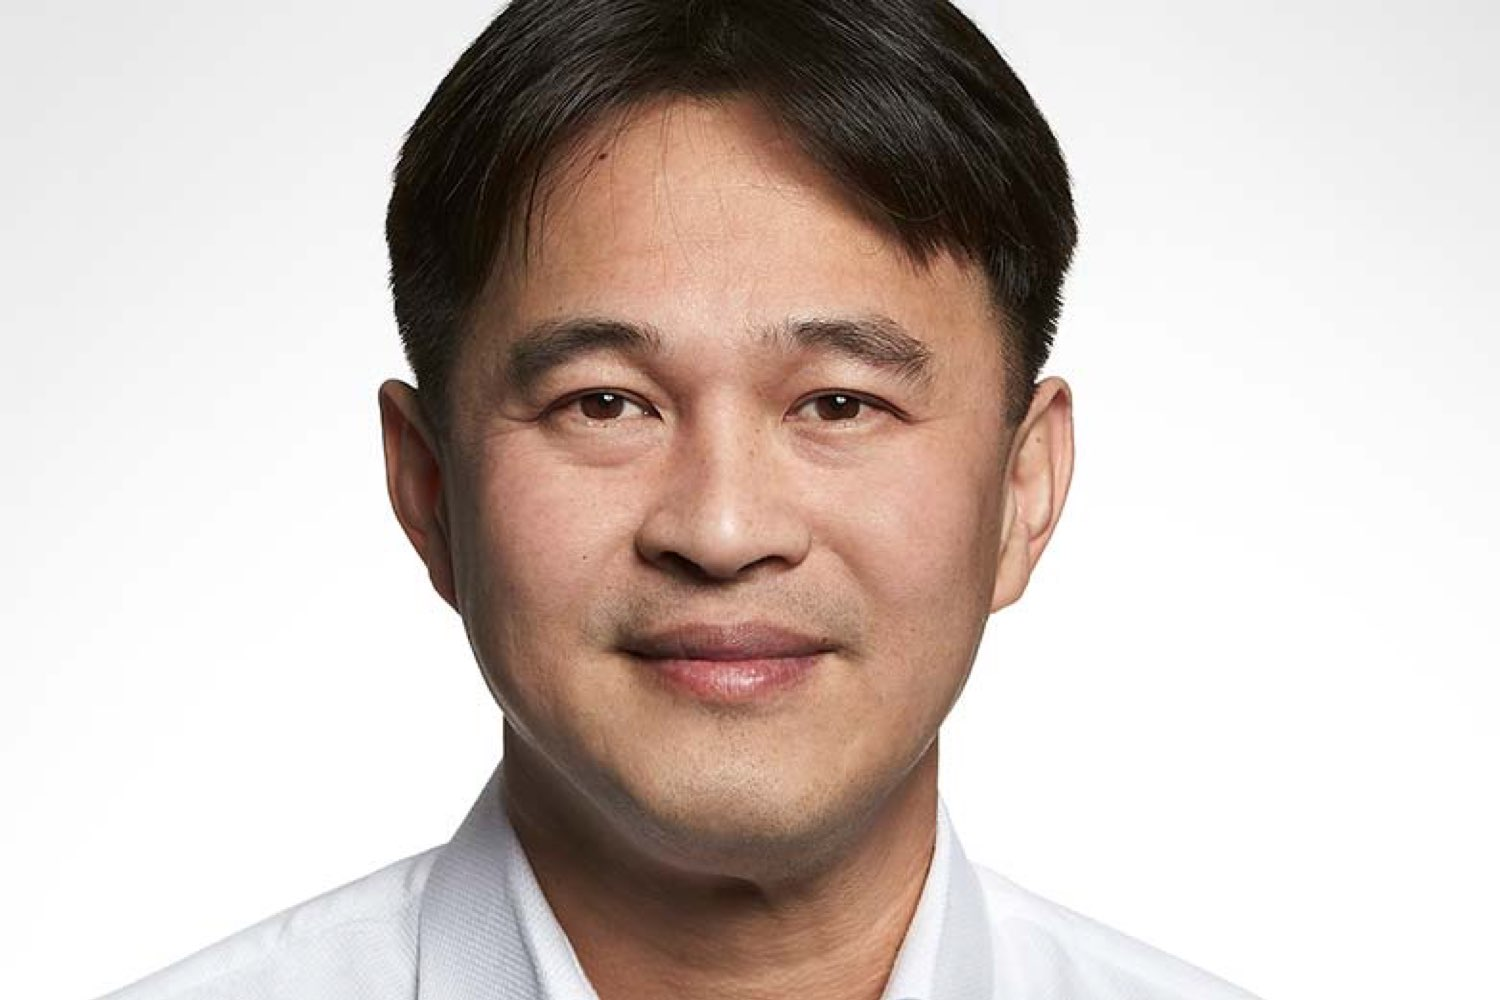 Image for article Kleiner Perkins VC Wen Hsieh on right-sizing the firm, his focus on 'hard tech'